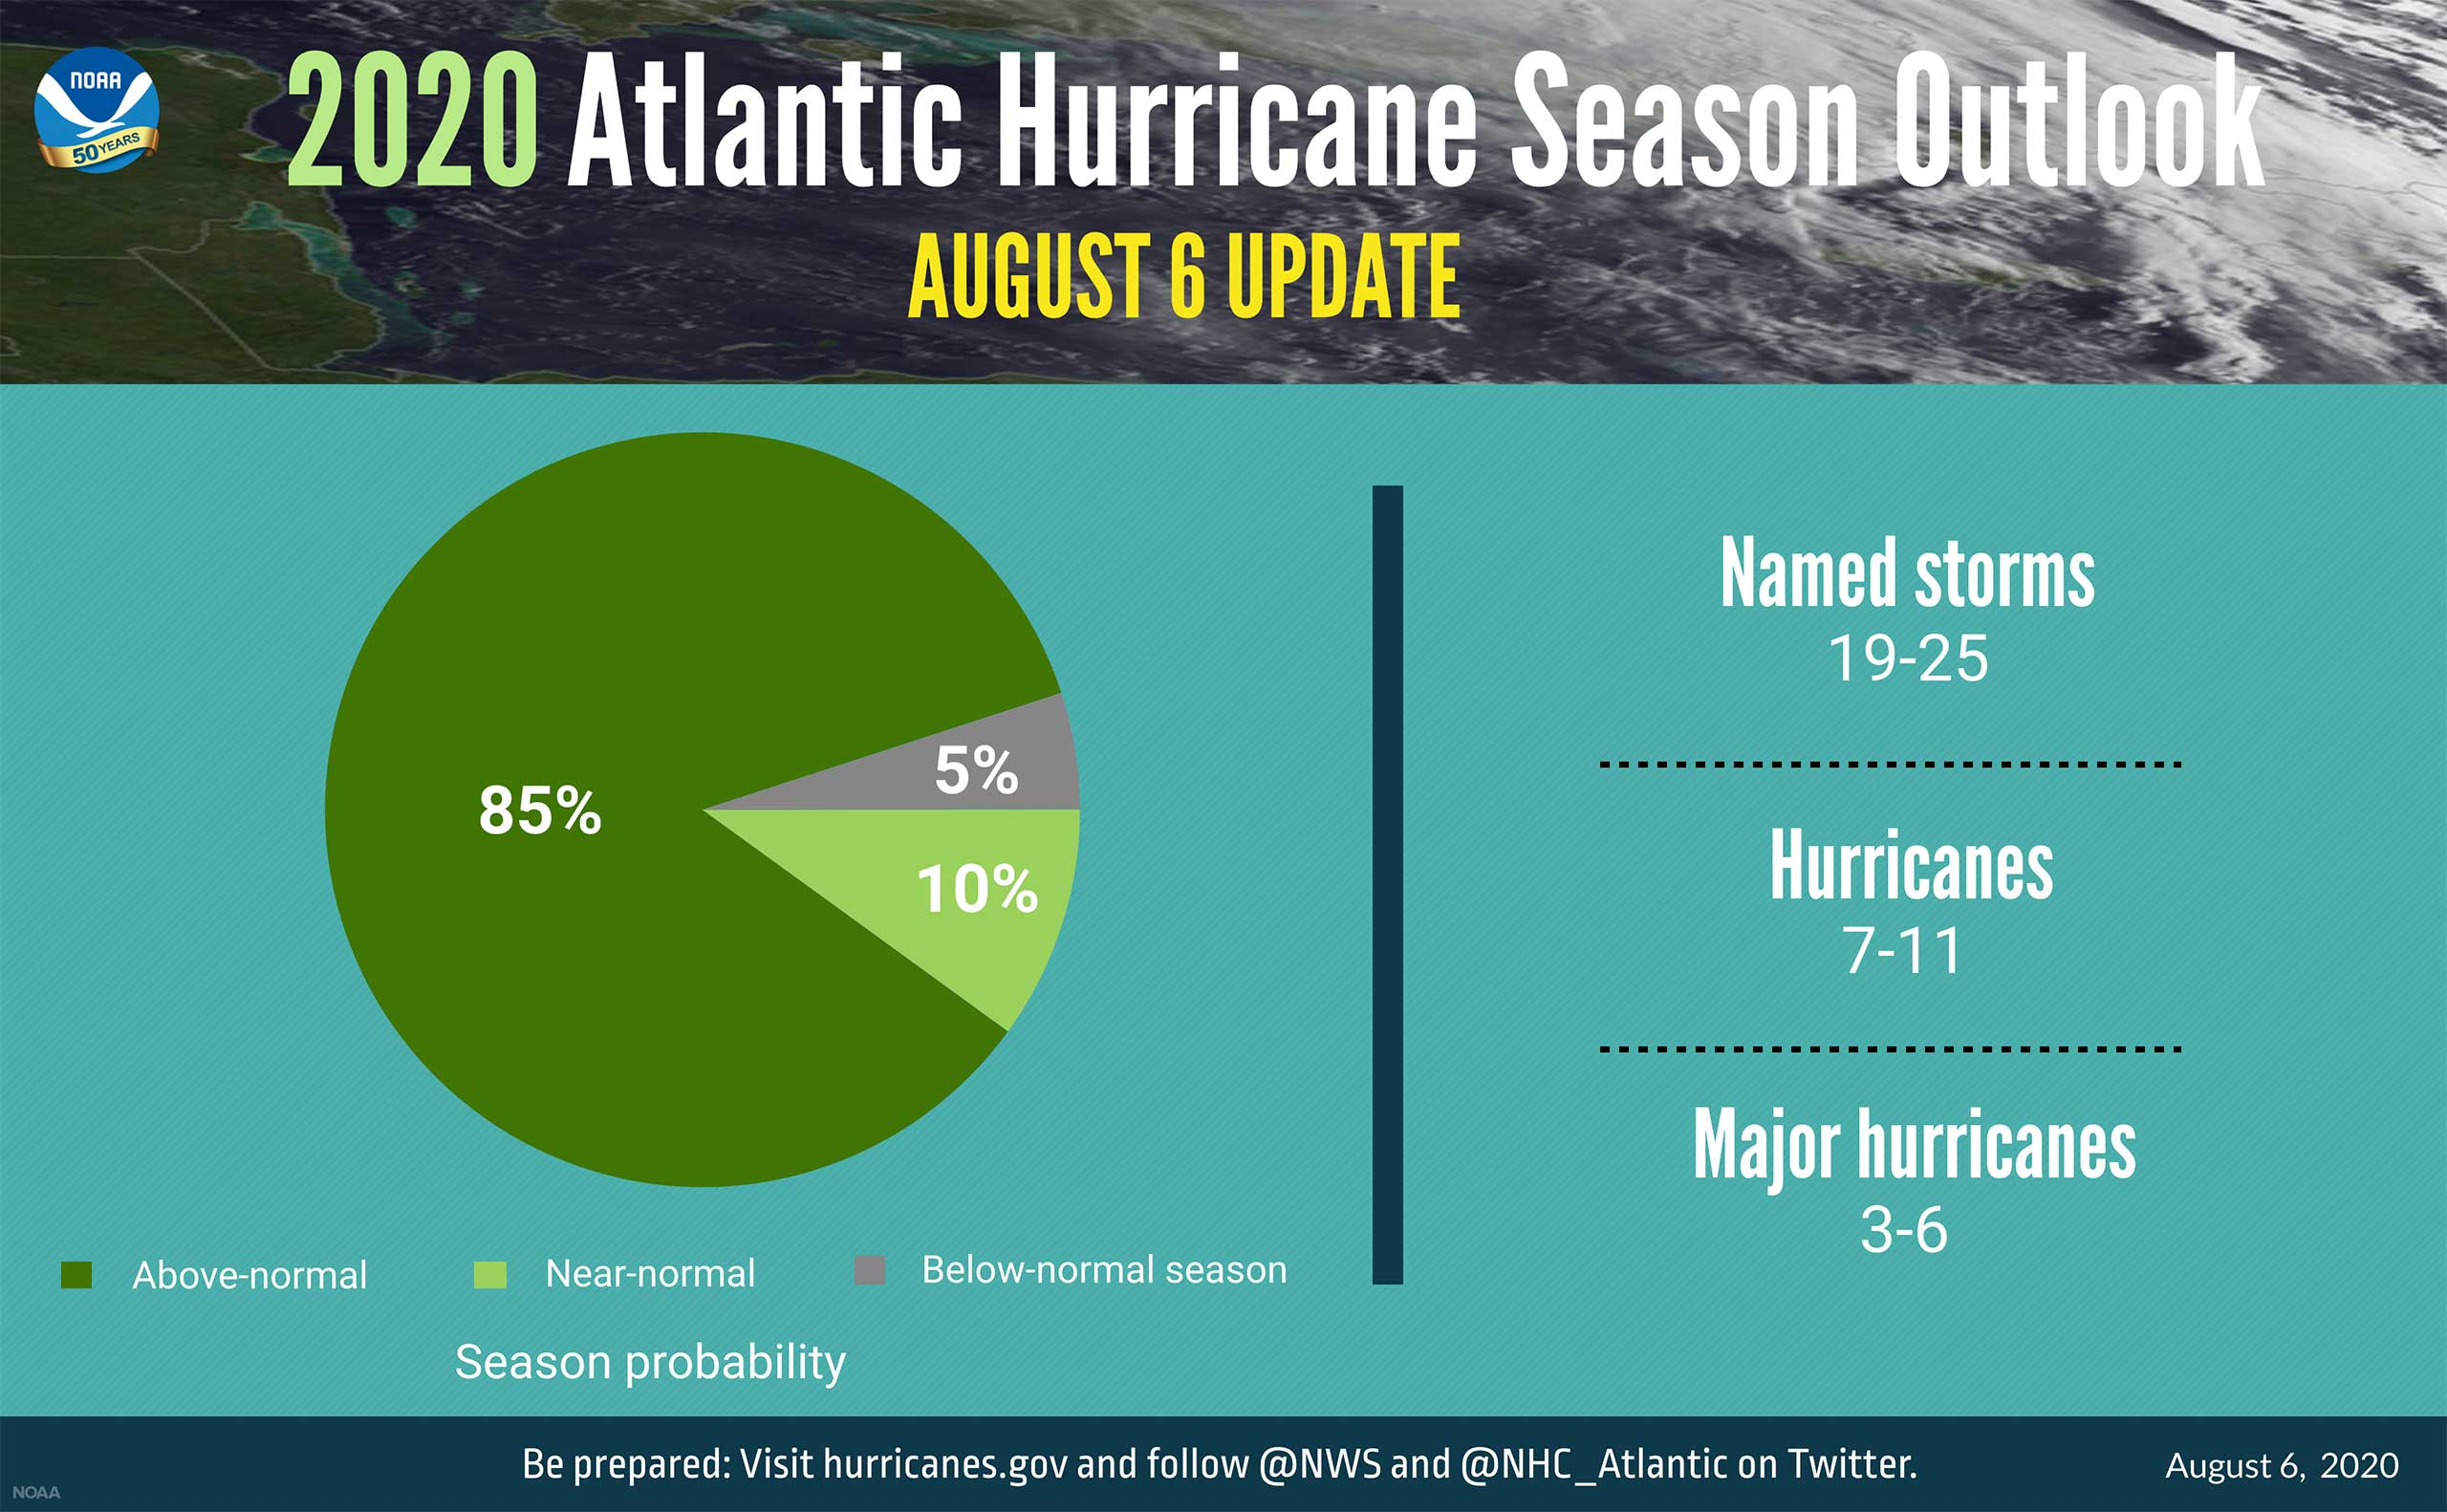 2020 Atlantic Hurricane Season Outlook